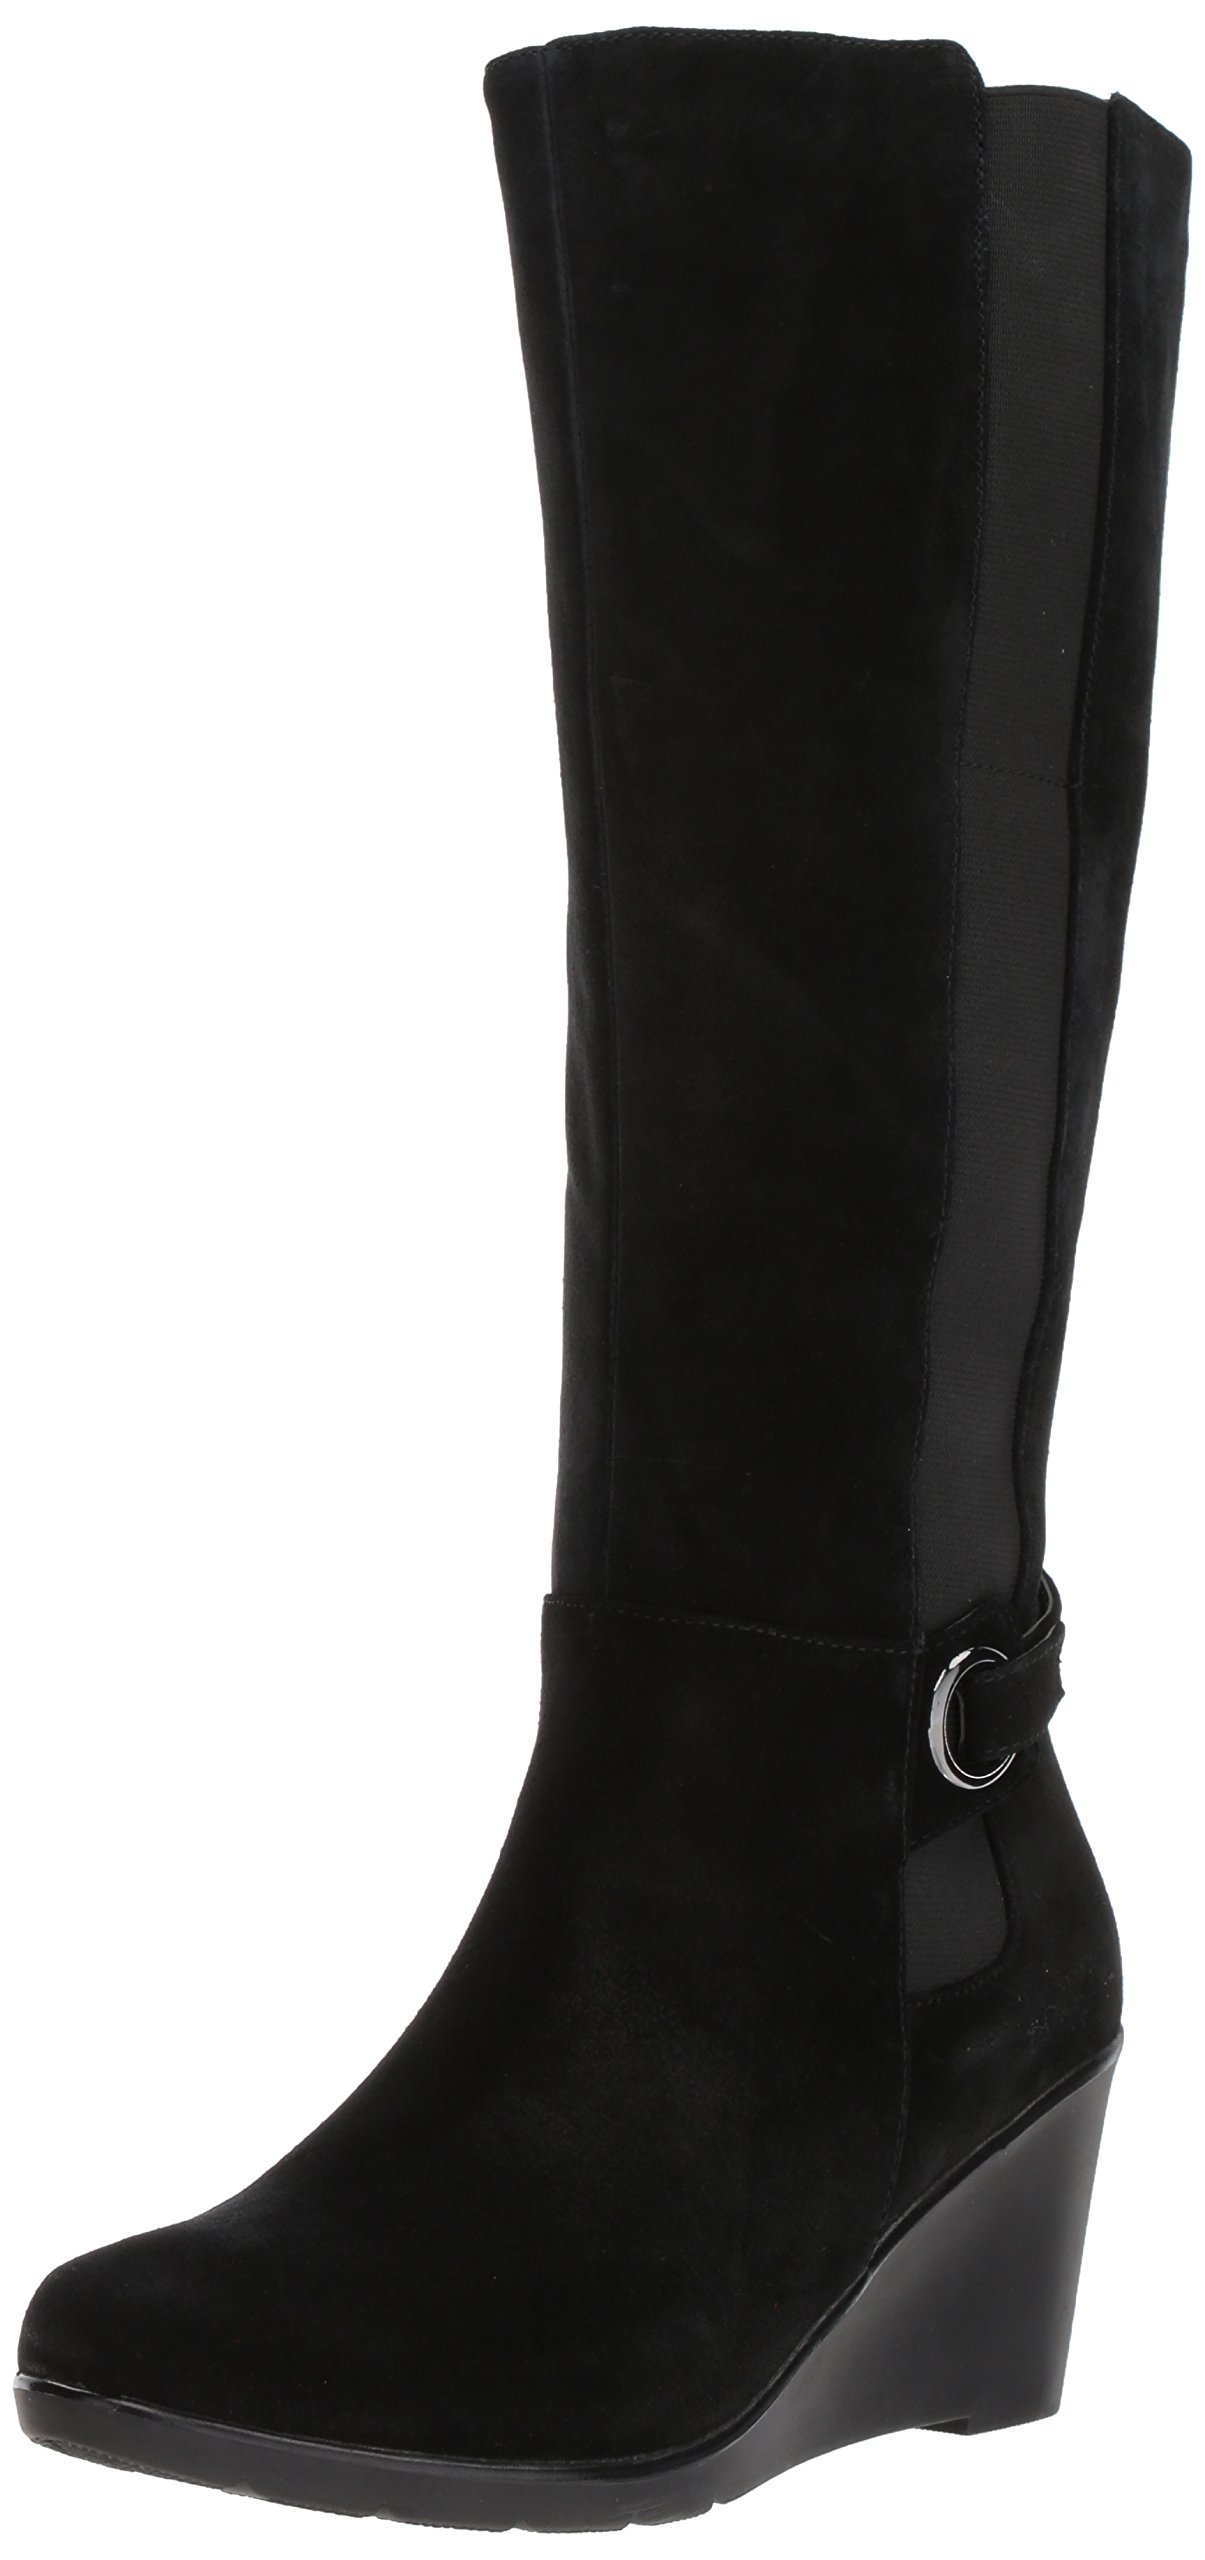 Blondo Women's Lexie Waterproof Winter Boot, Black, 5.5 M US